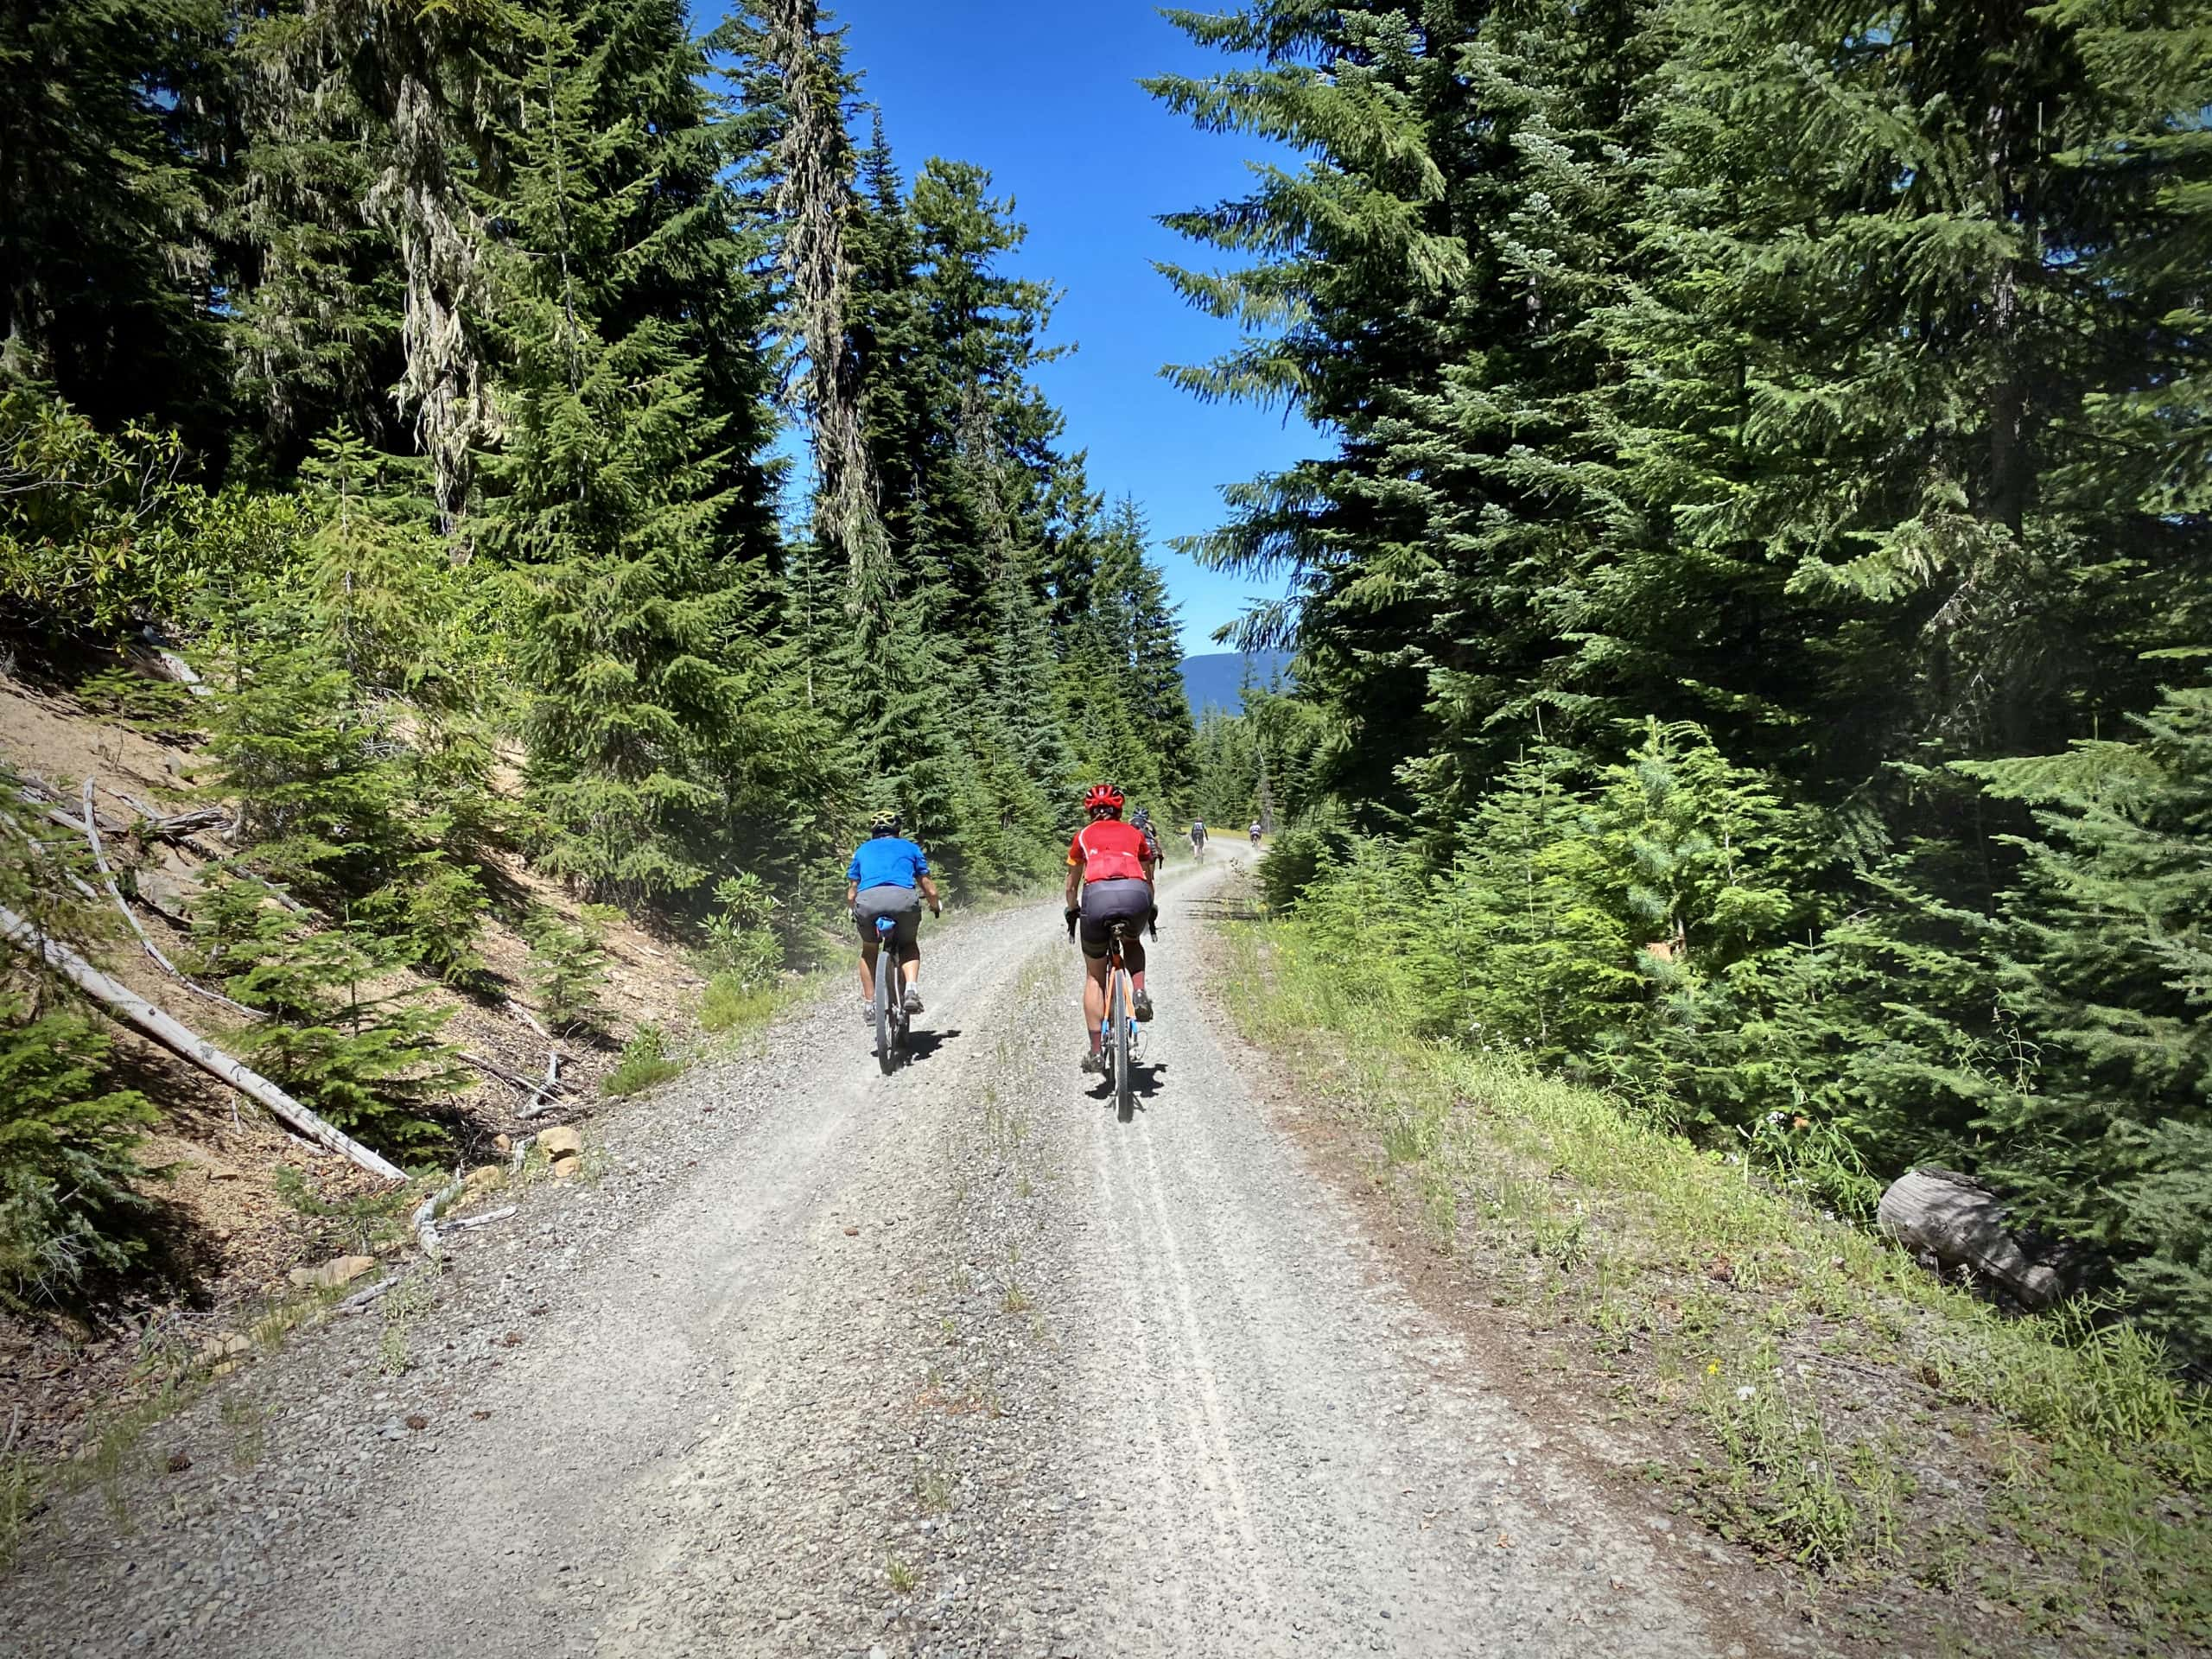 Cyclists riding gravel road in the Umpqua National Forest.